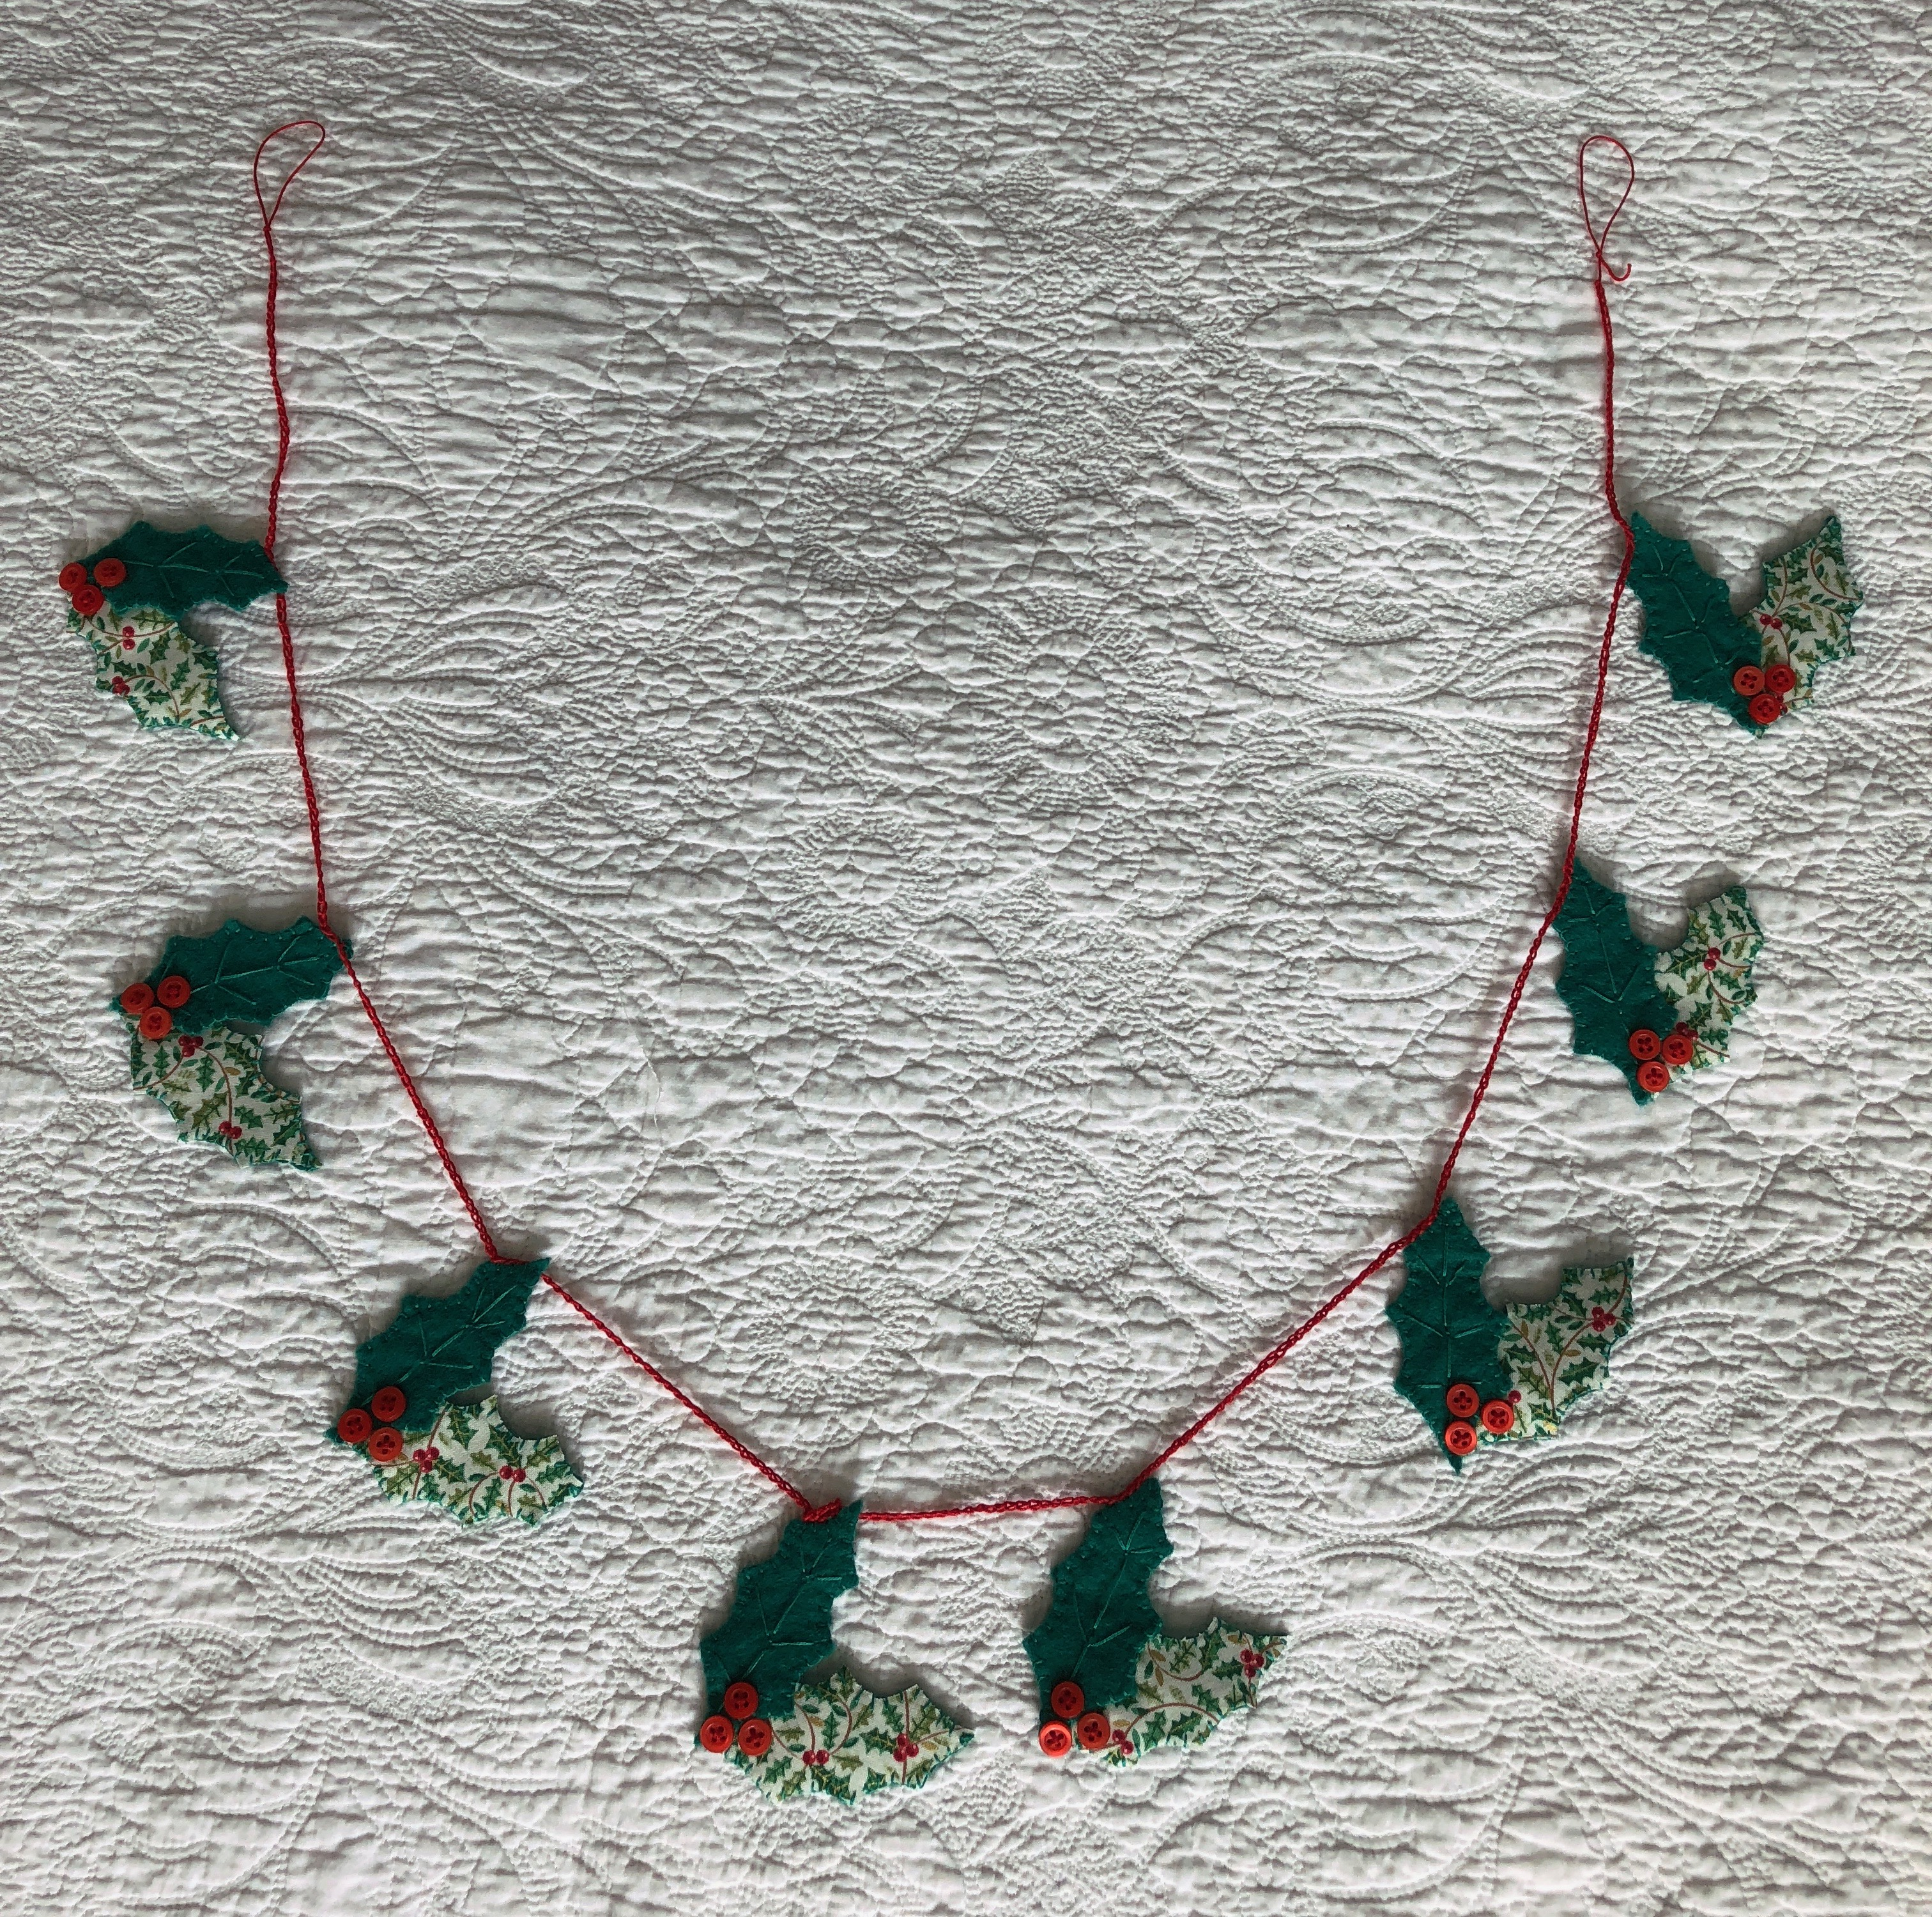 A handmade, hand stitched garland of green felt and holly printed cotton fabric holly leaves with red button berries.